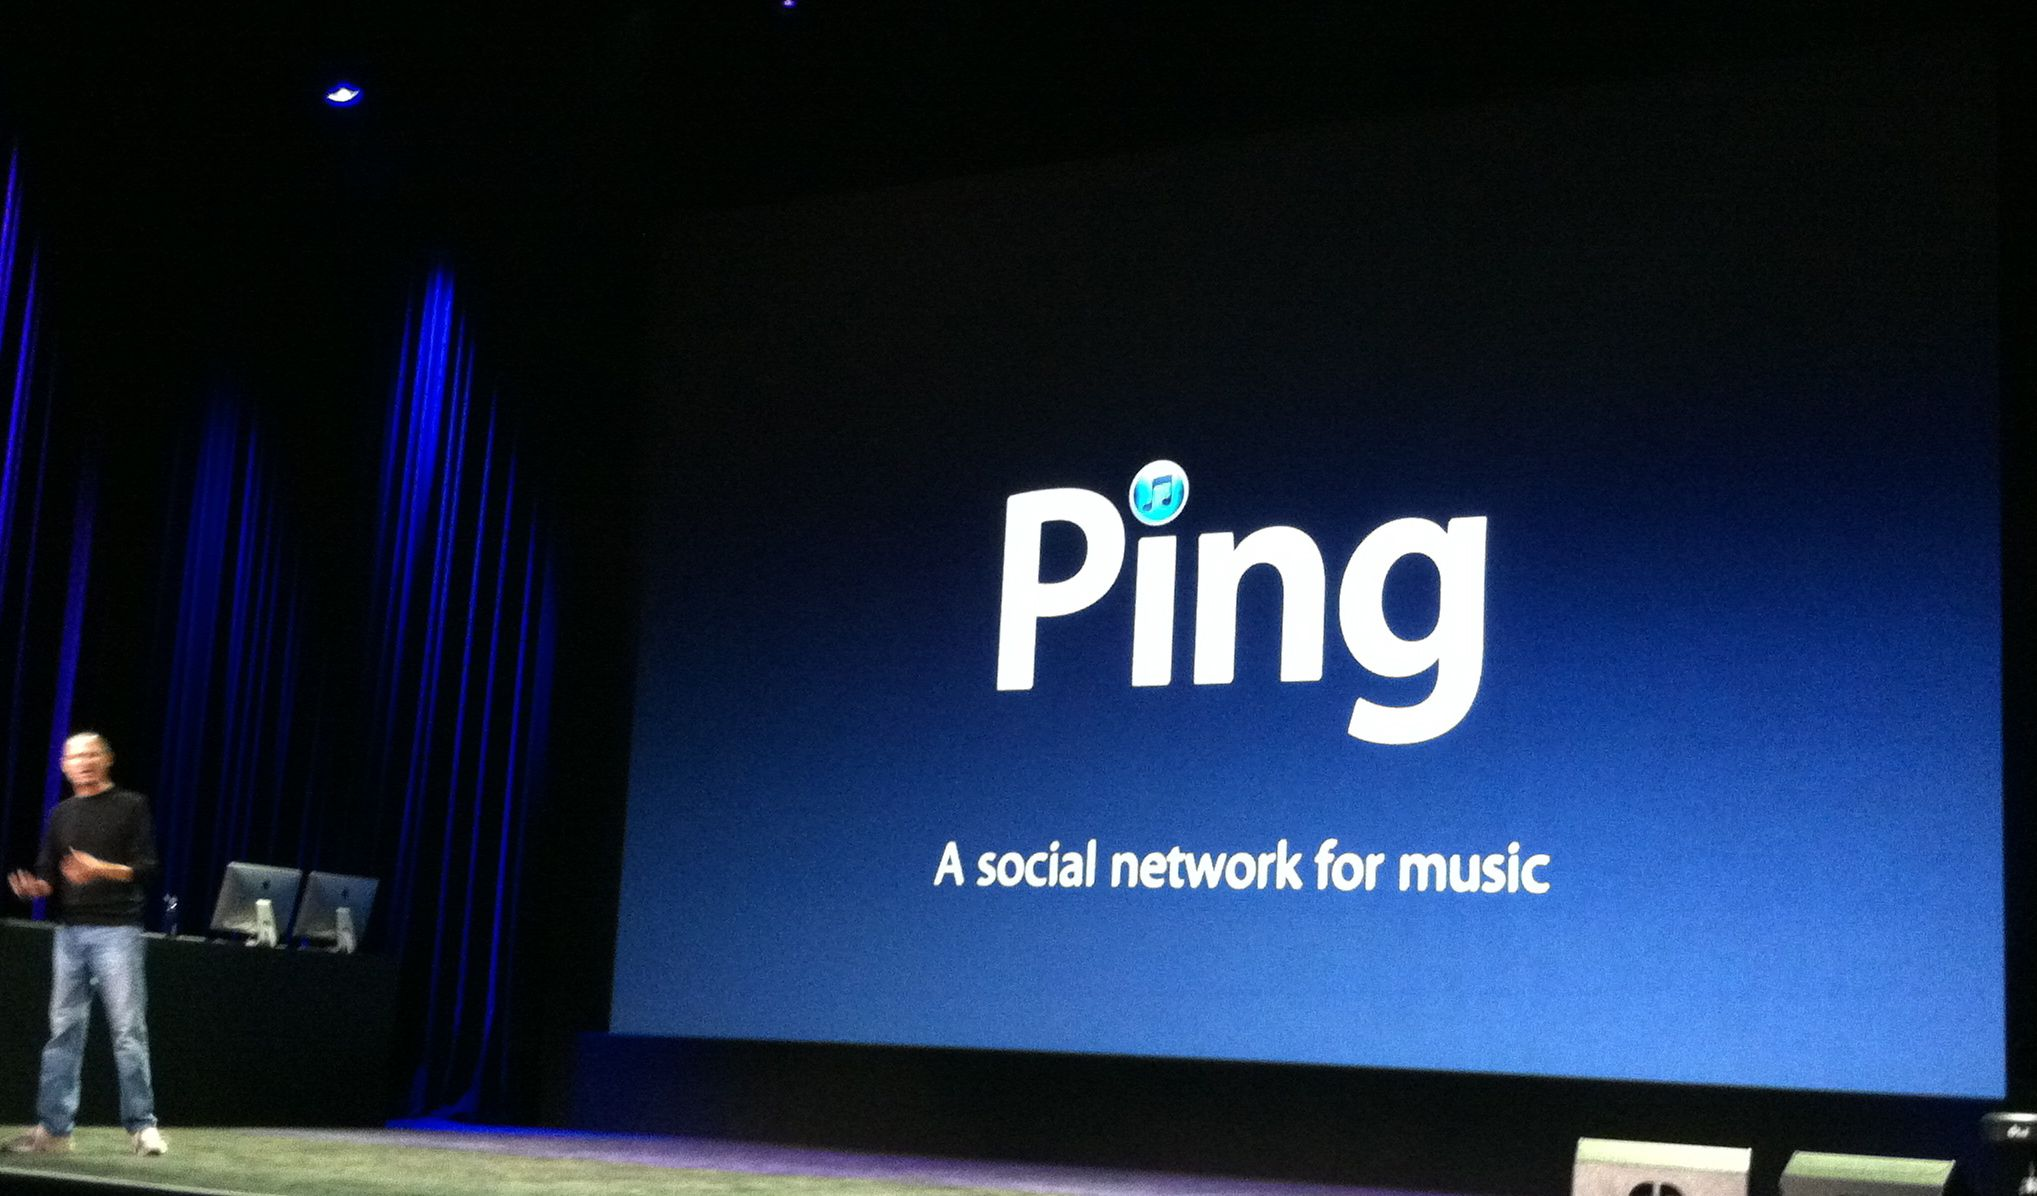 Apple: addio al social network Ping